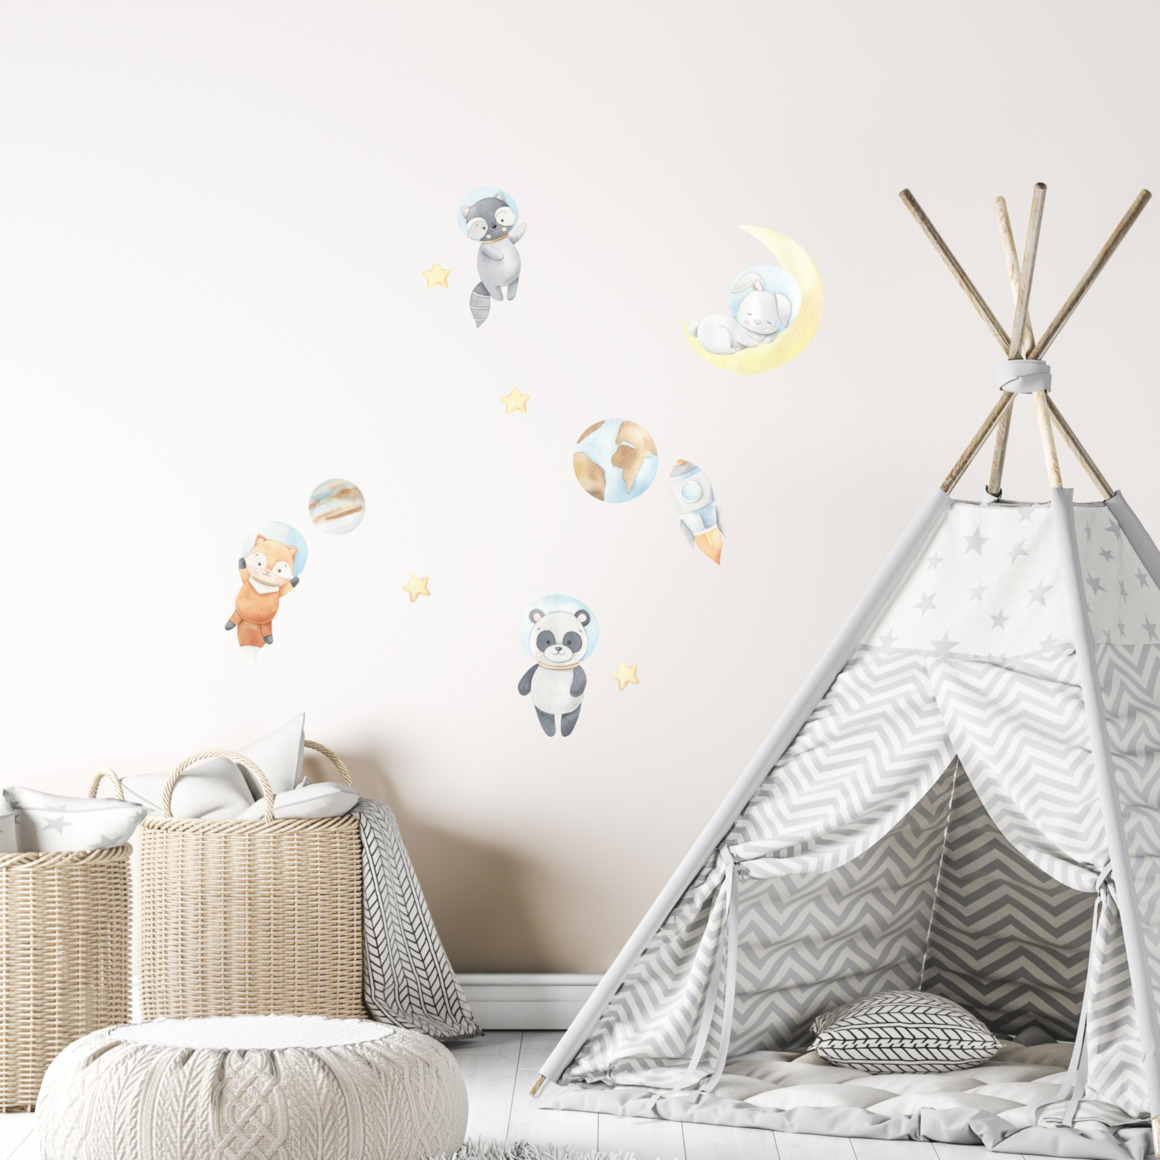 Fabric wall decals - Space adventures   Trada Marketplace